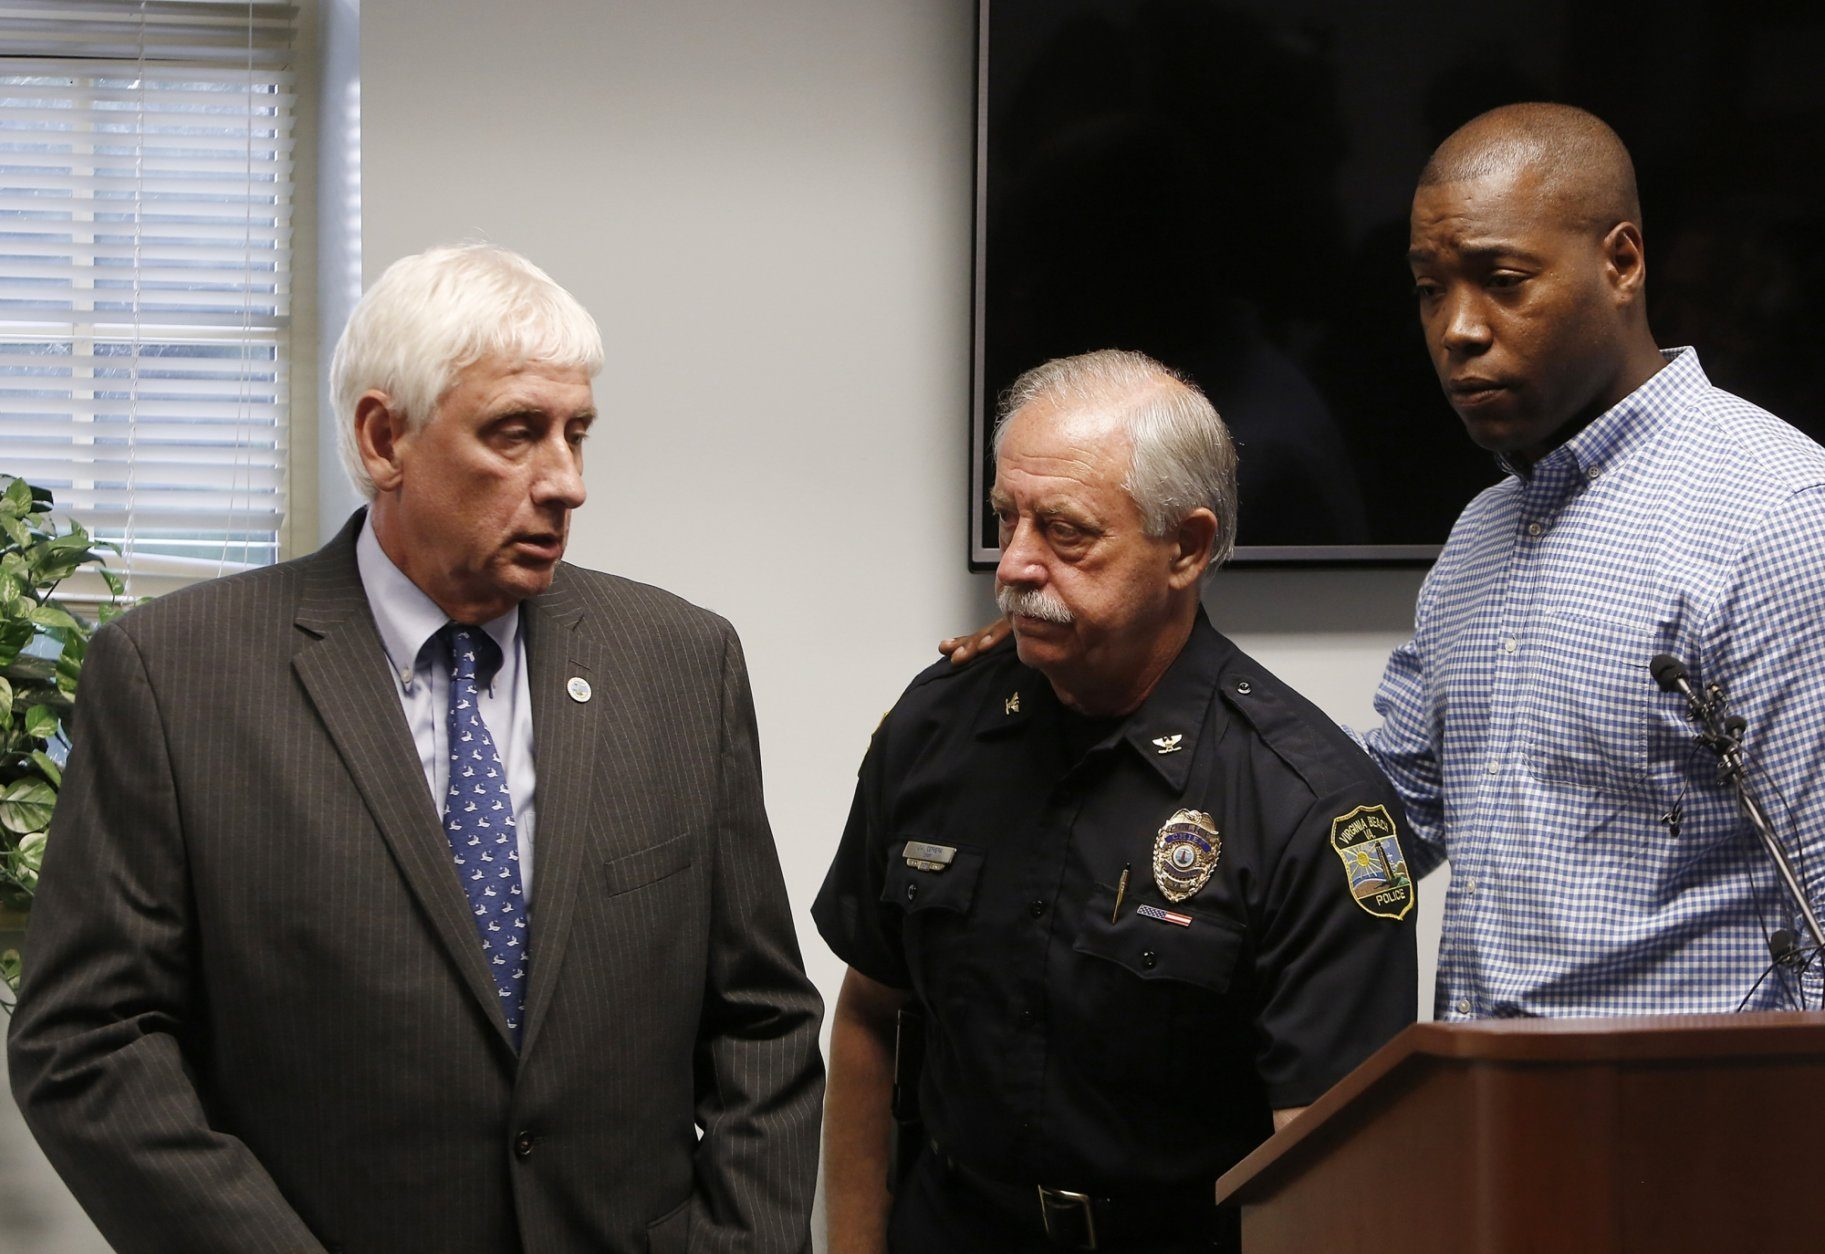 Virginia Beach Mayor Bobby Dyer, left, looks on as City Councilman Aaron Rouse, right, comforts Chief of Police James Cervera following a press conference, Friday, May 31, 2019 in Virginia Beach, Va. A longtime city employee opened fire at a municipal building in Virginia Beach on Friday, killing 11 people before police shot and killed him, authorities said. Six other people were wounded in the shooting, including a police officer whose bulletproof vest saved his life, said Virginia Beach Police Chief James Cervera. (Kaitlin McKeown/The Virginian-Pilot via AP)